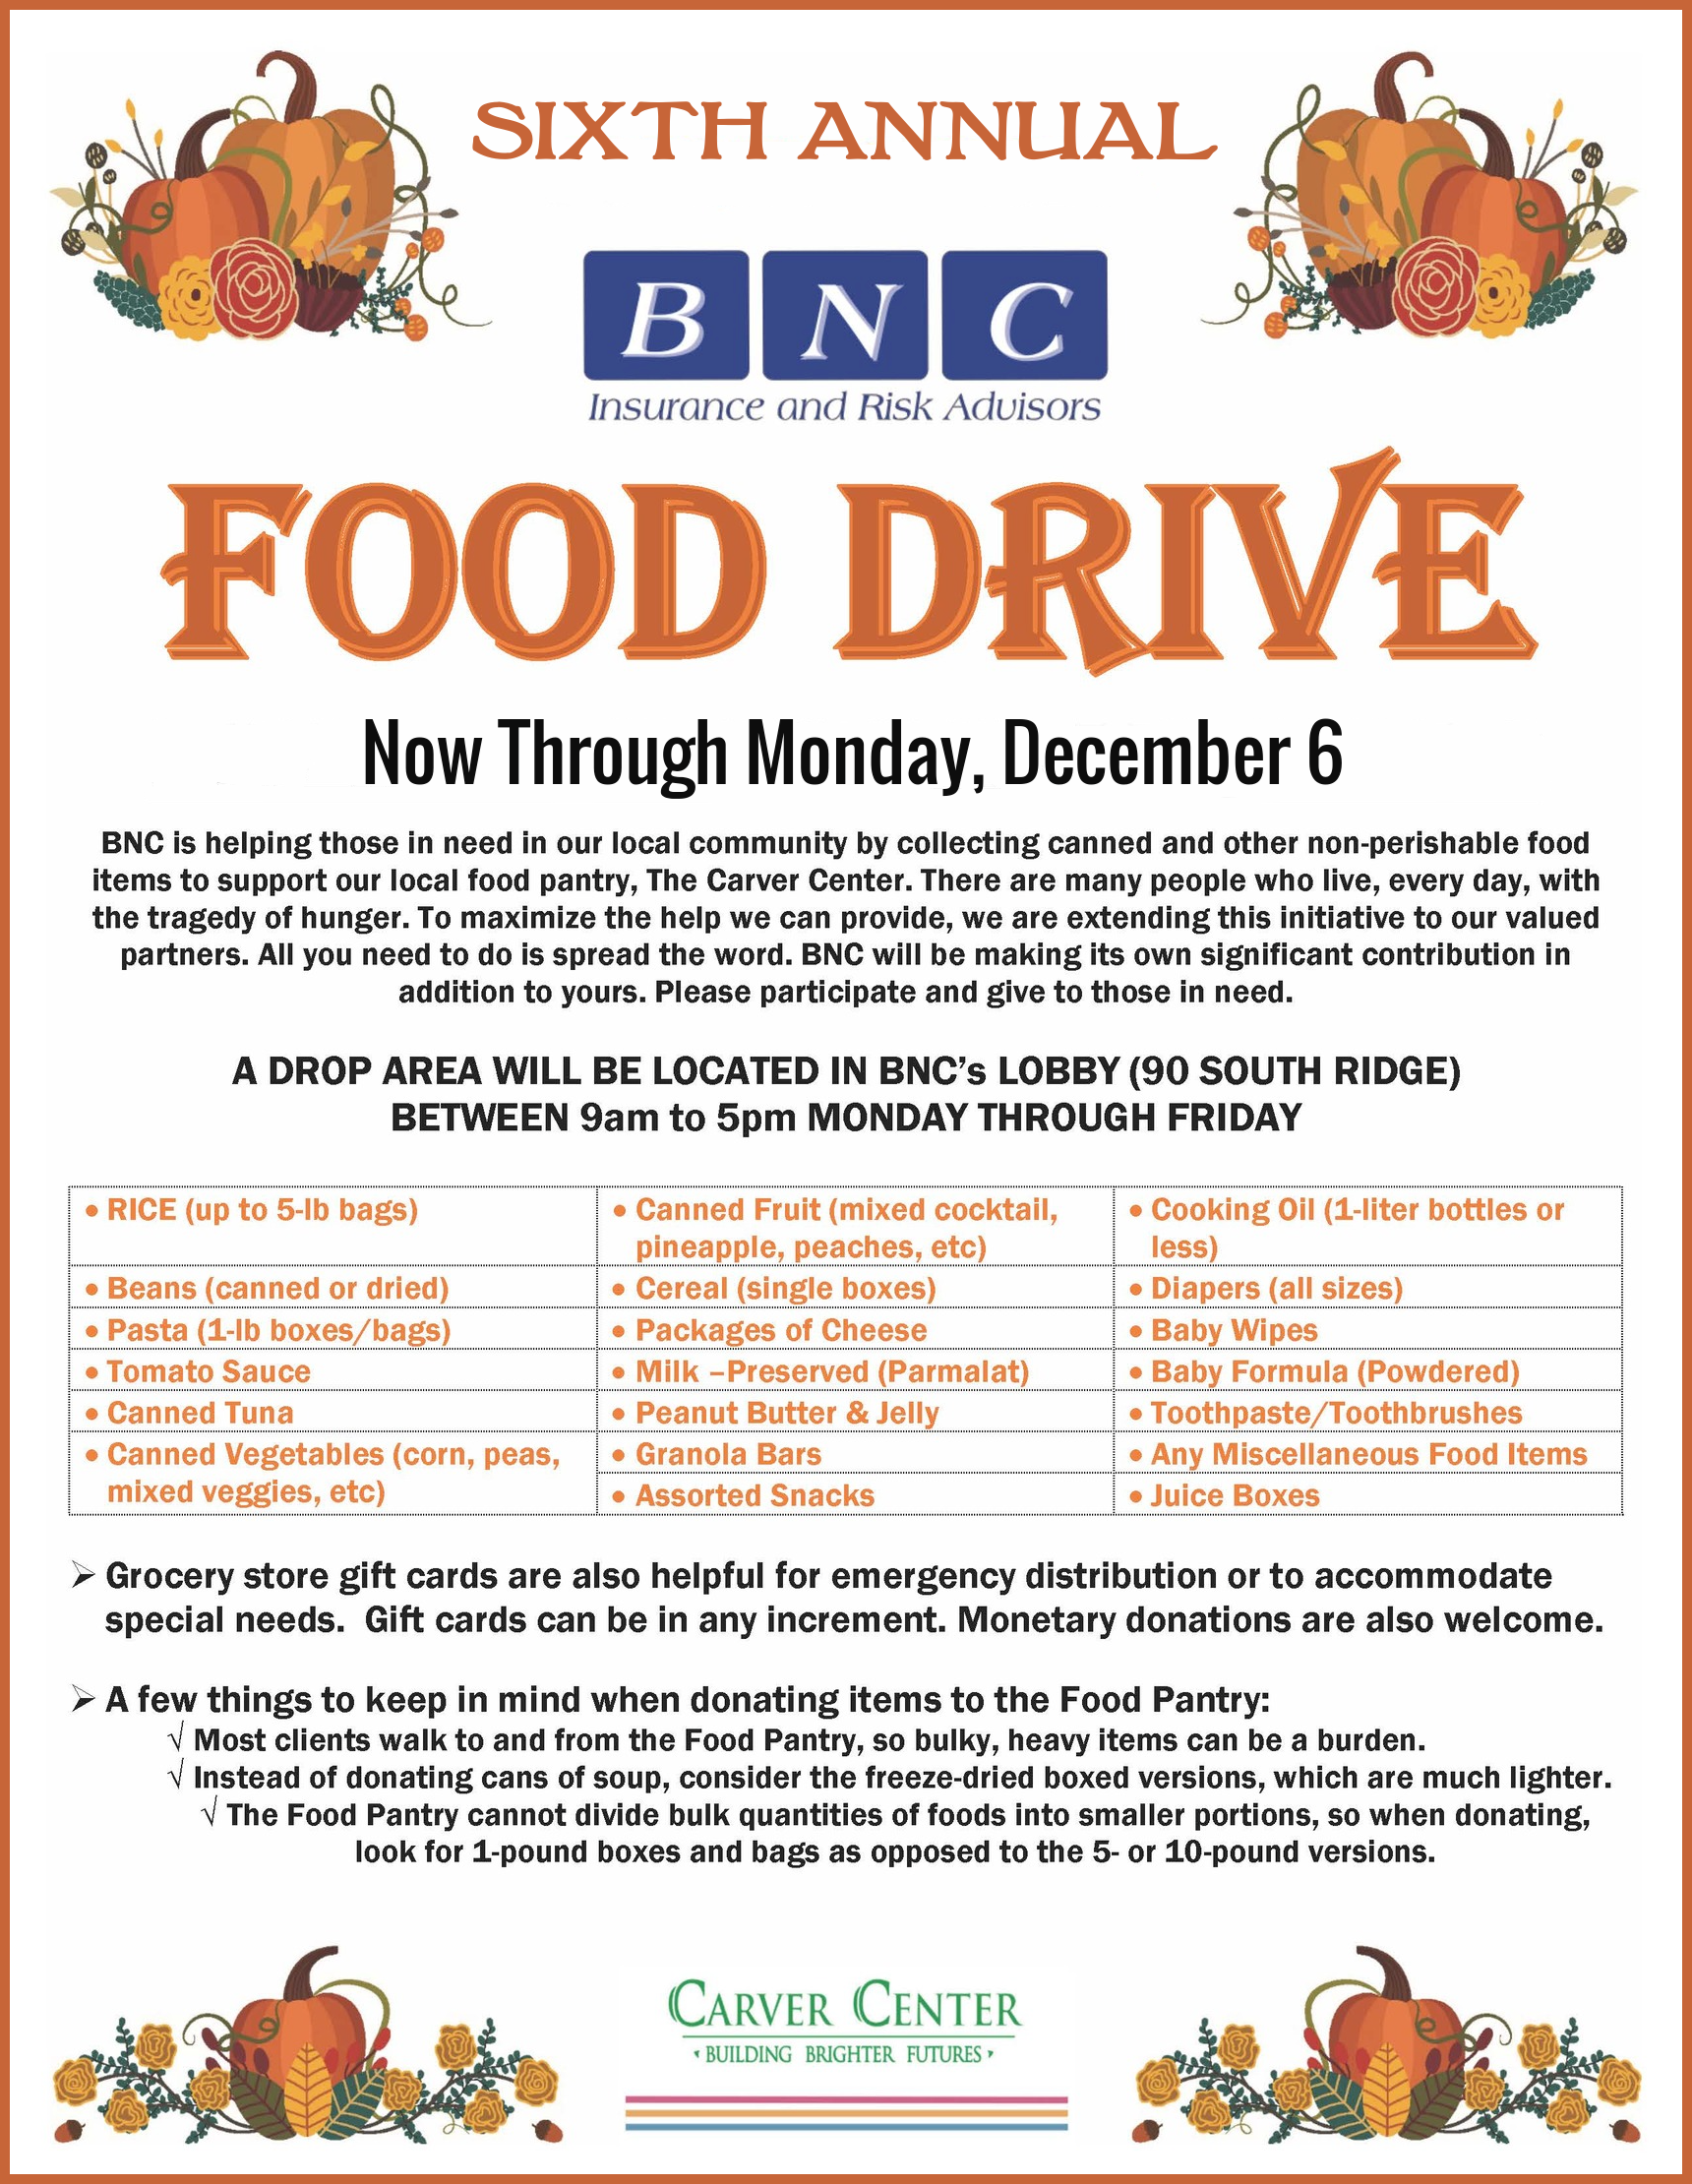 Announcing BNC's Sixth Annual Food Drive